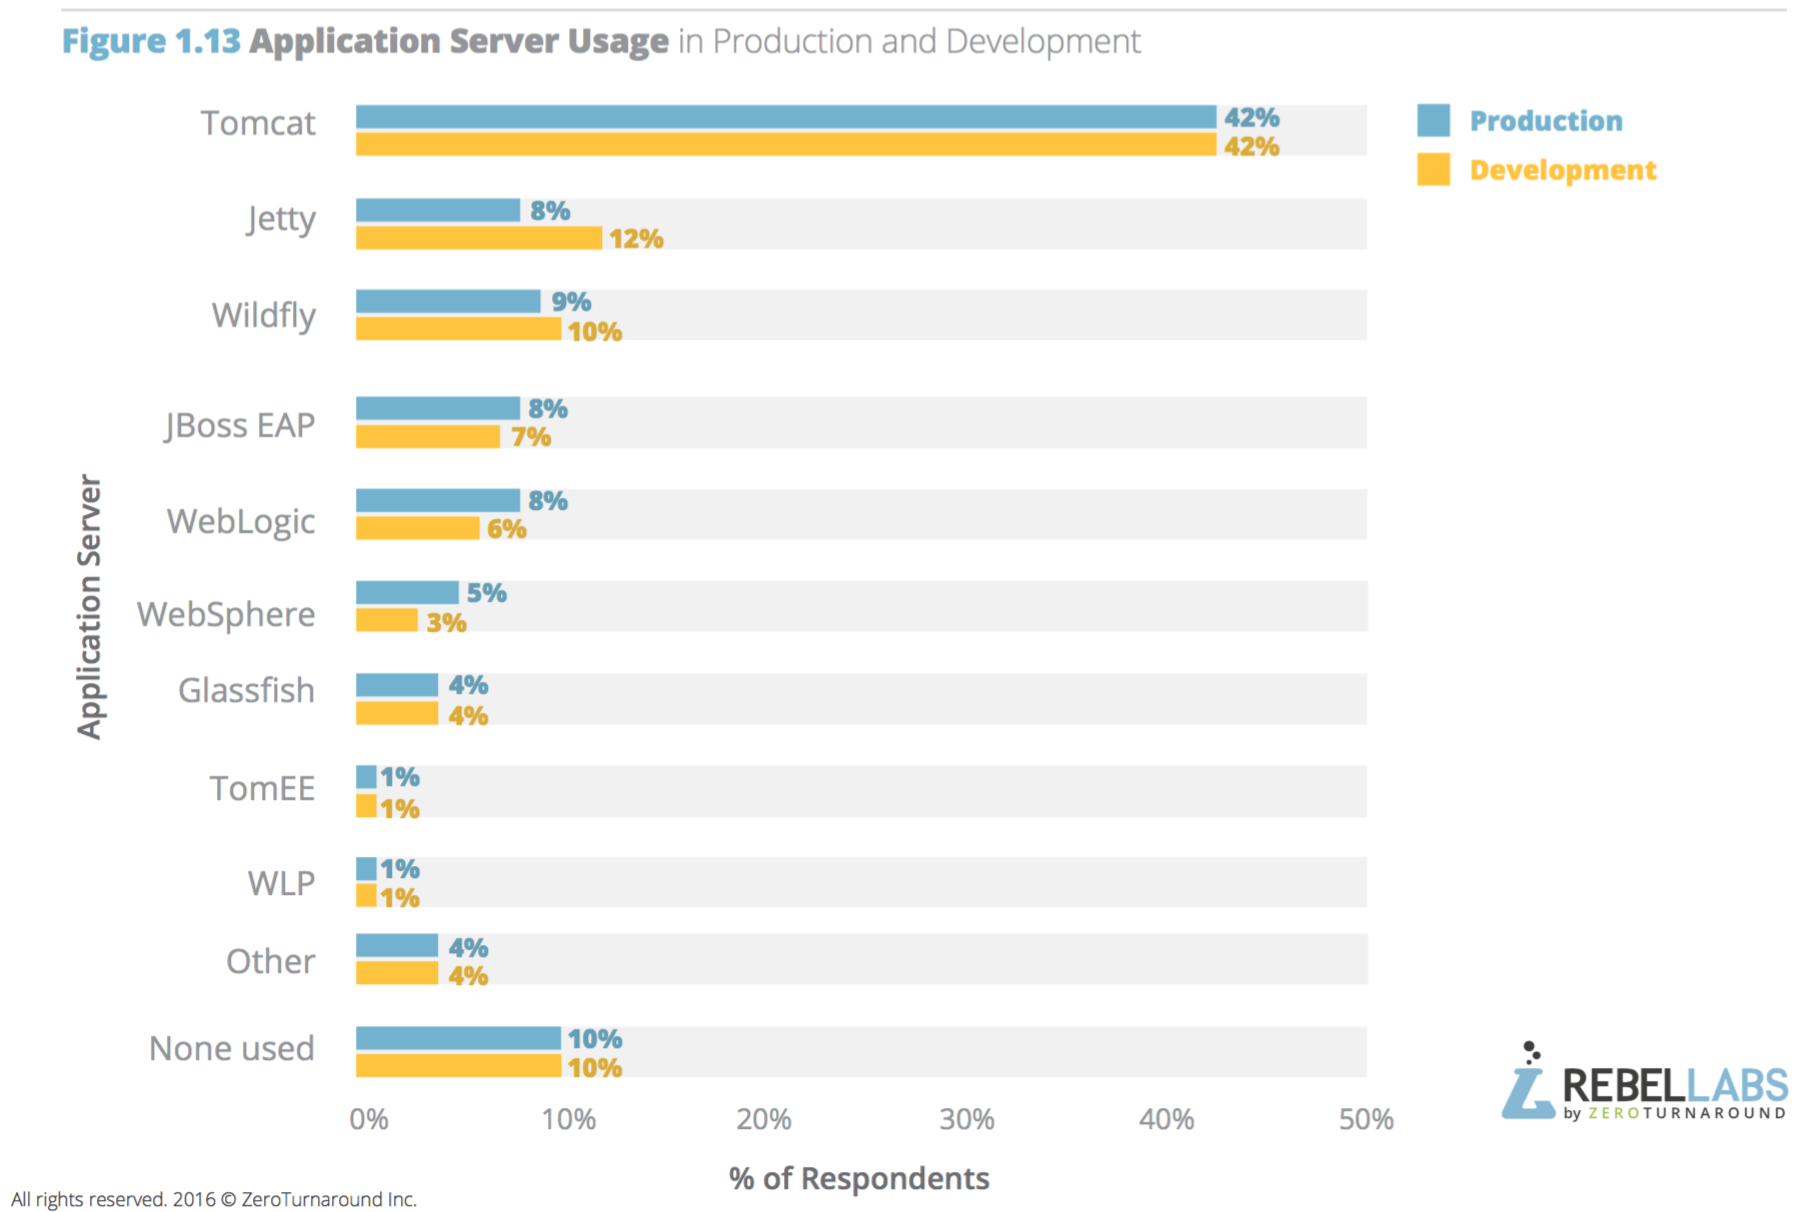 bar graph showing application server usage in production and development